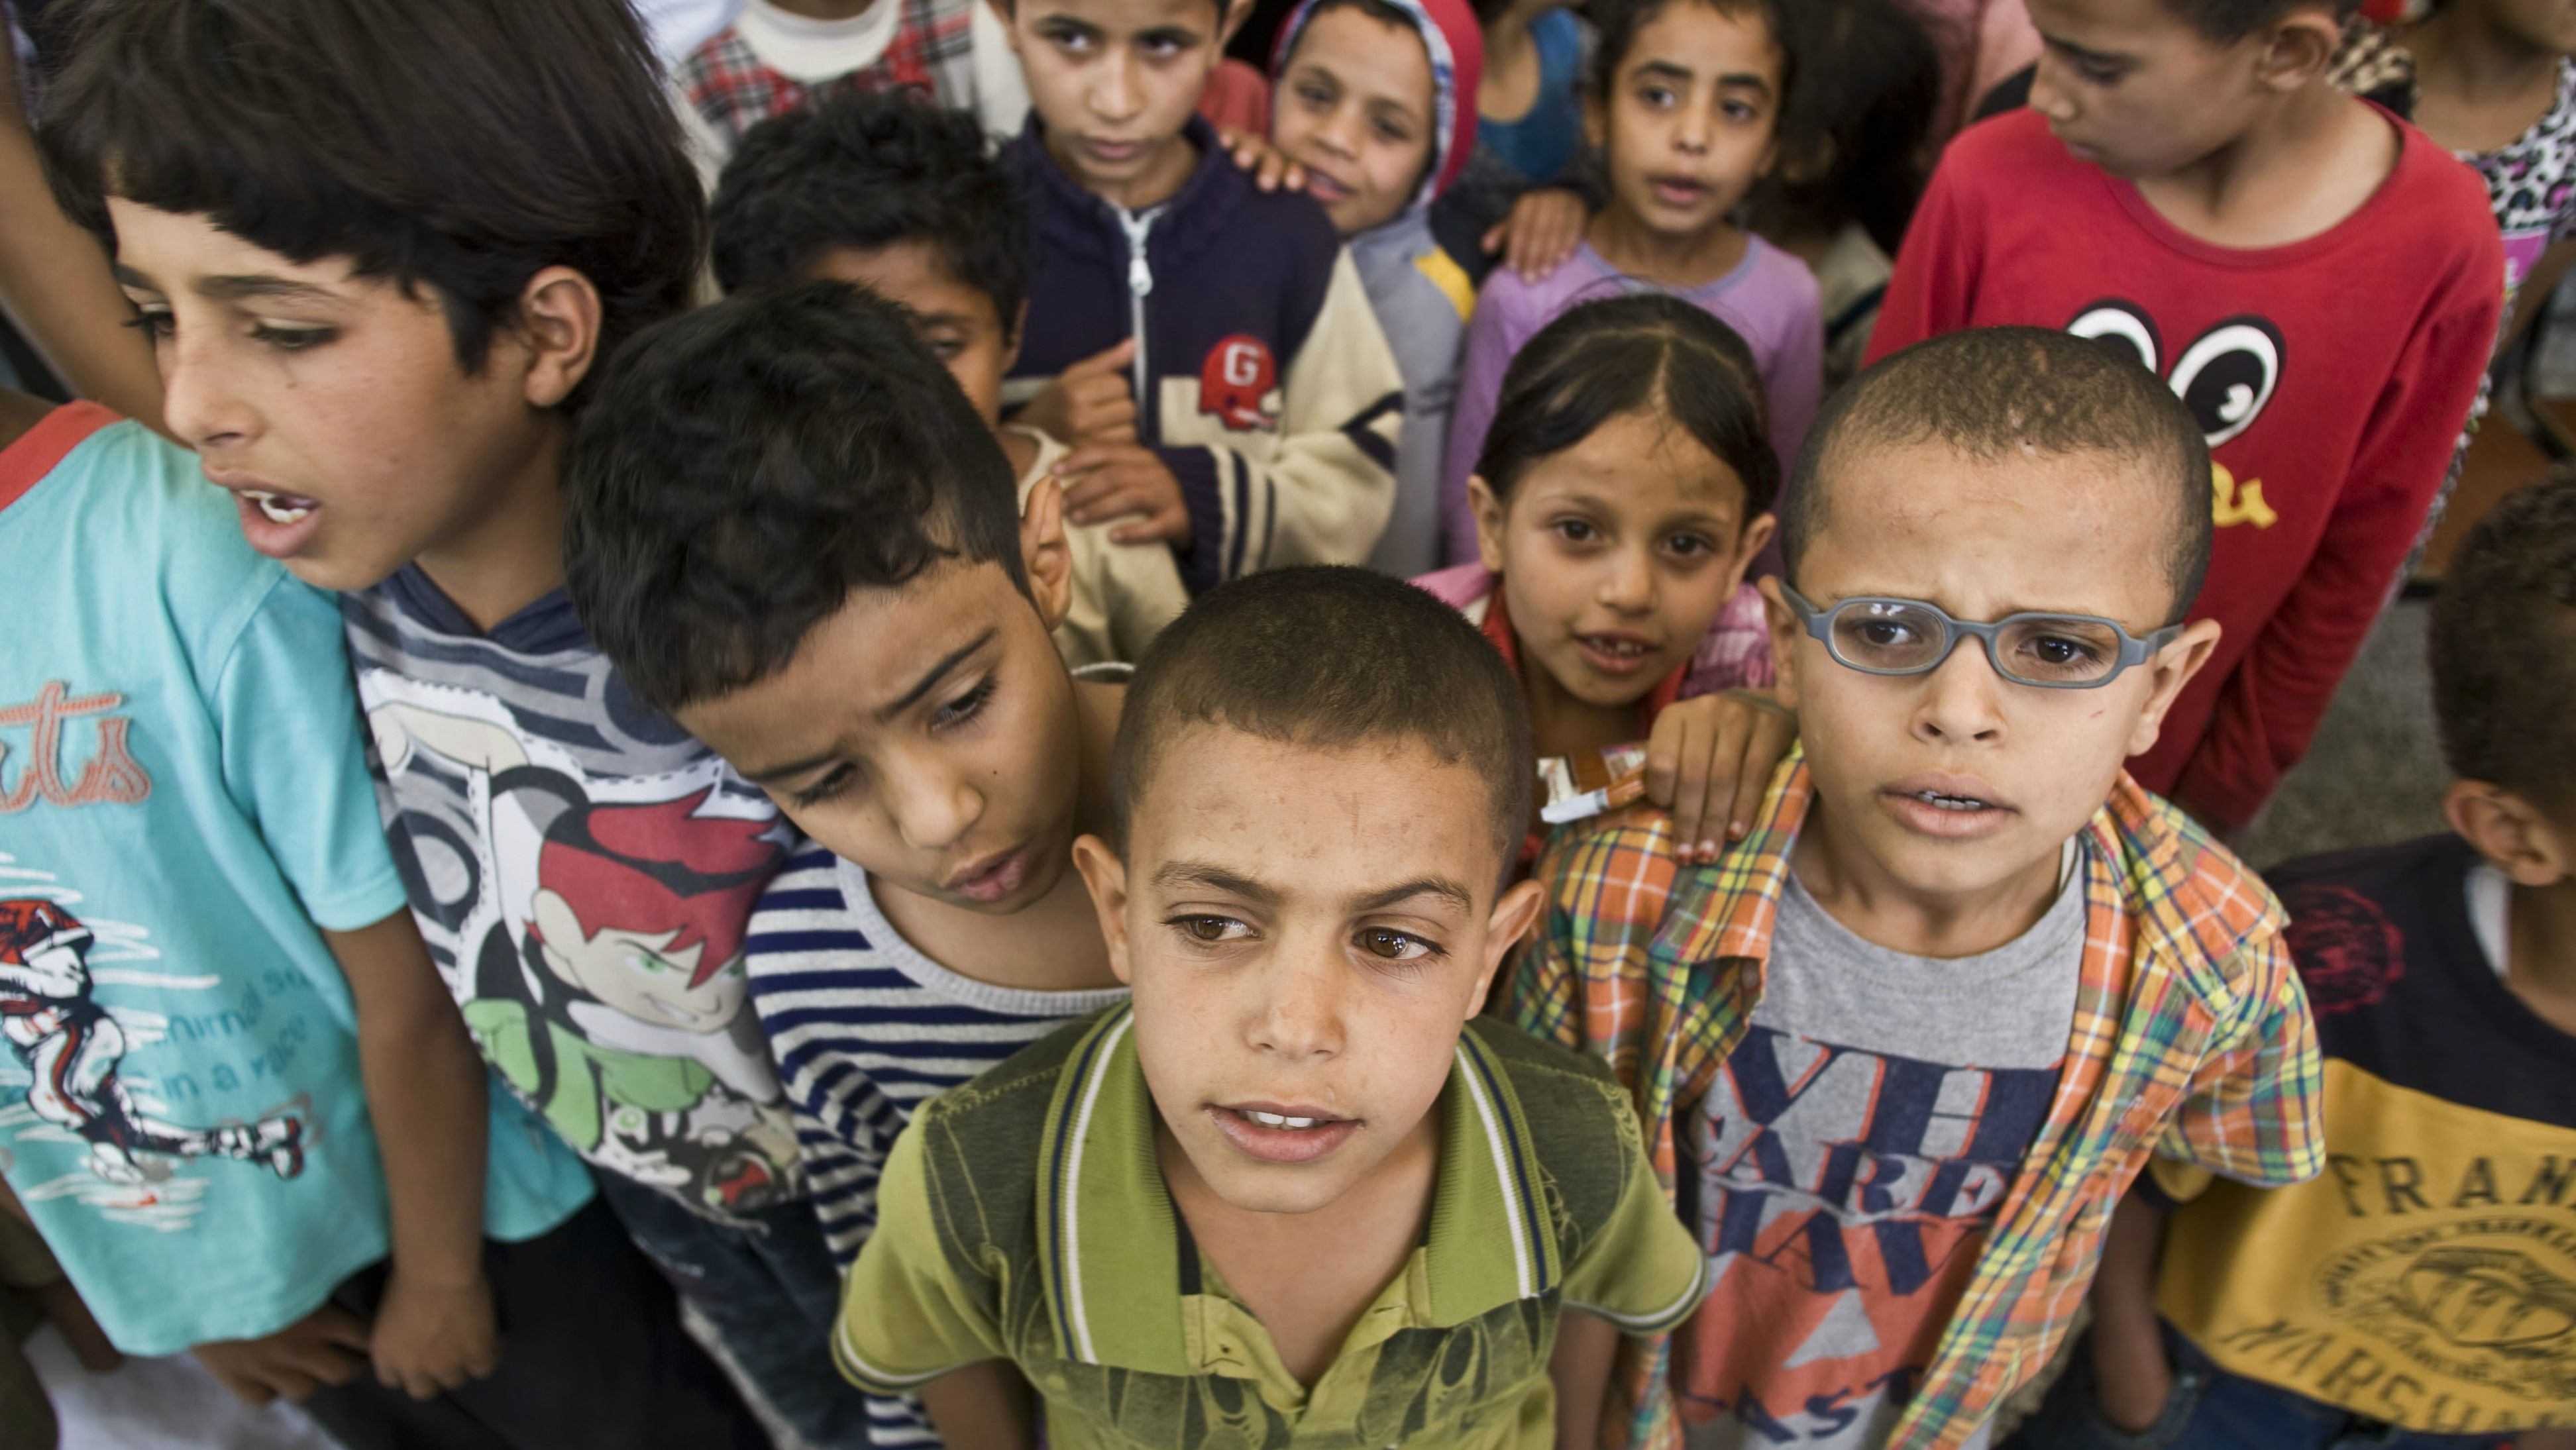 Displaced boys who fled their home after a Saudi-led airstrike destroyed their houses, live in a school in Sanaa, Yemen, Thursday, May 14, 2015. The conflict in Yemen has killed more than 1,400 people - many of them civilians - since March 19, according to the U.N. The country of some 25 million people has endured shortages of food, water, medicine and electricity as a result of a Saudi-led blockade. (AP Photo/Hani Mohammed